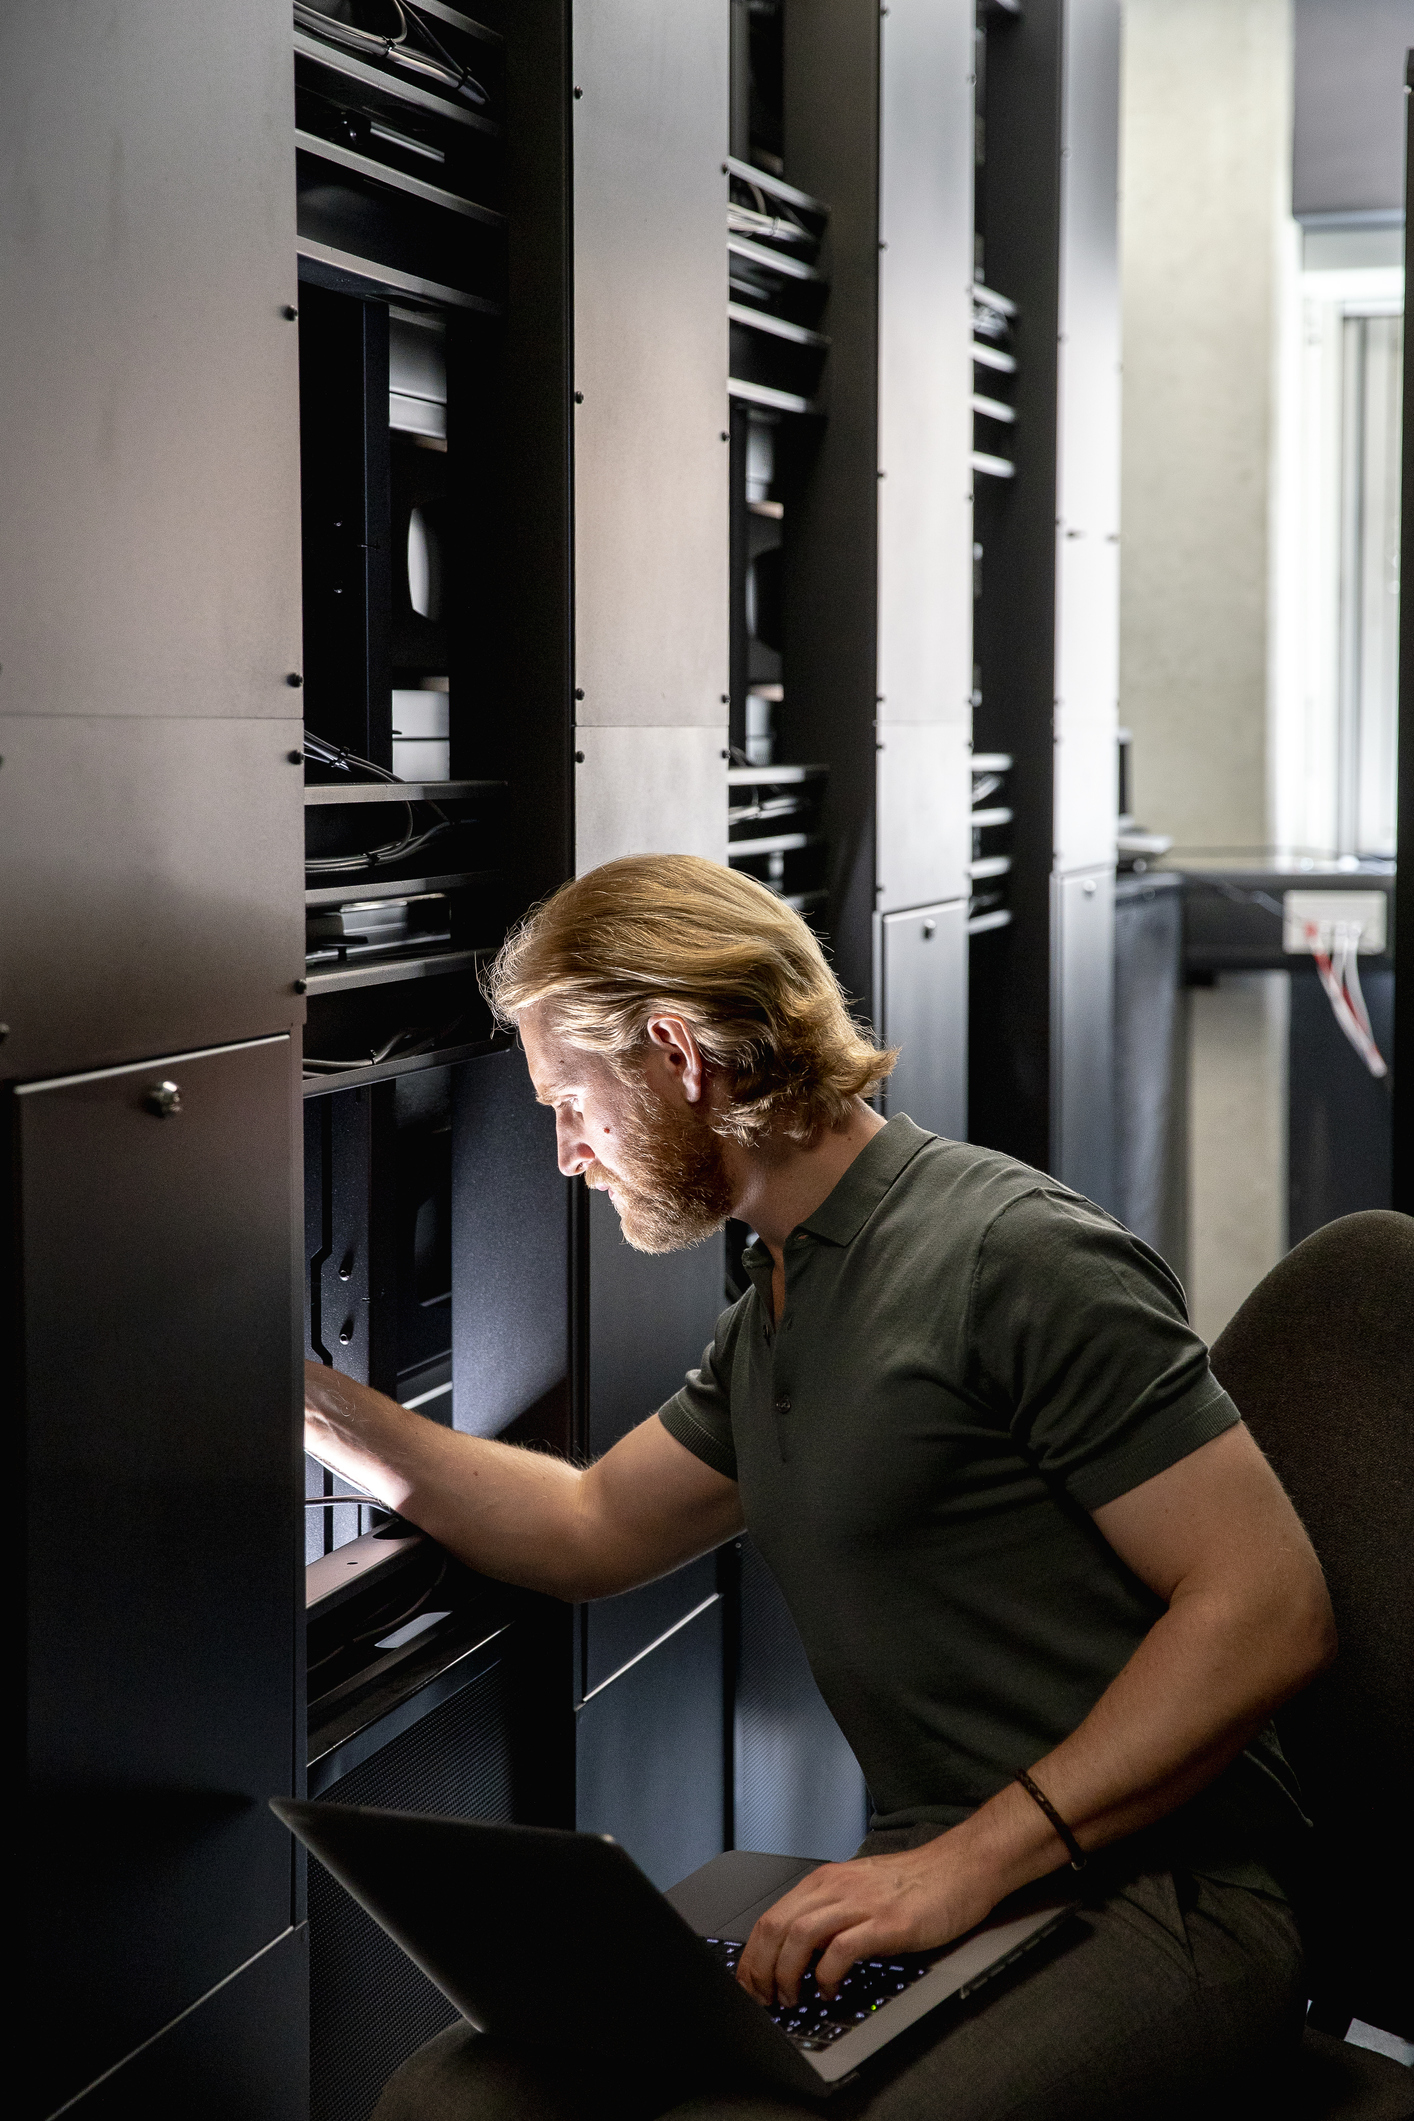 man checking servers for security breech